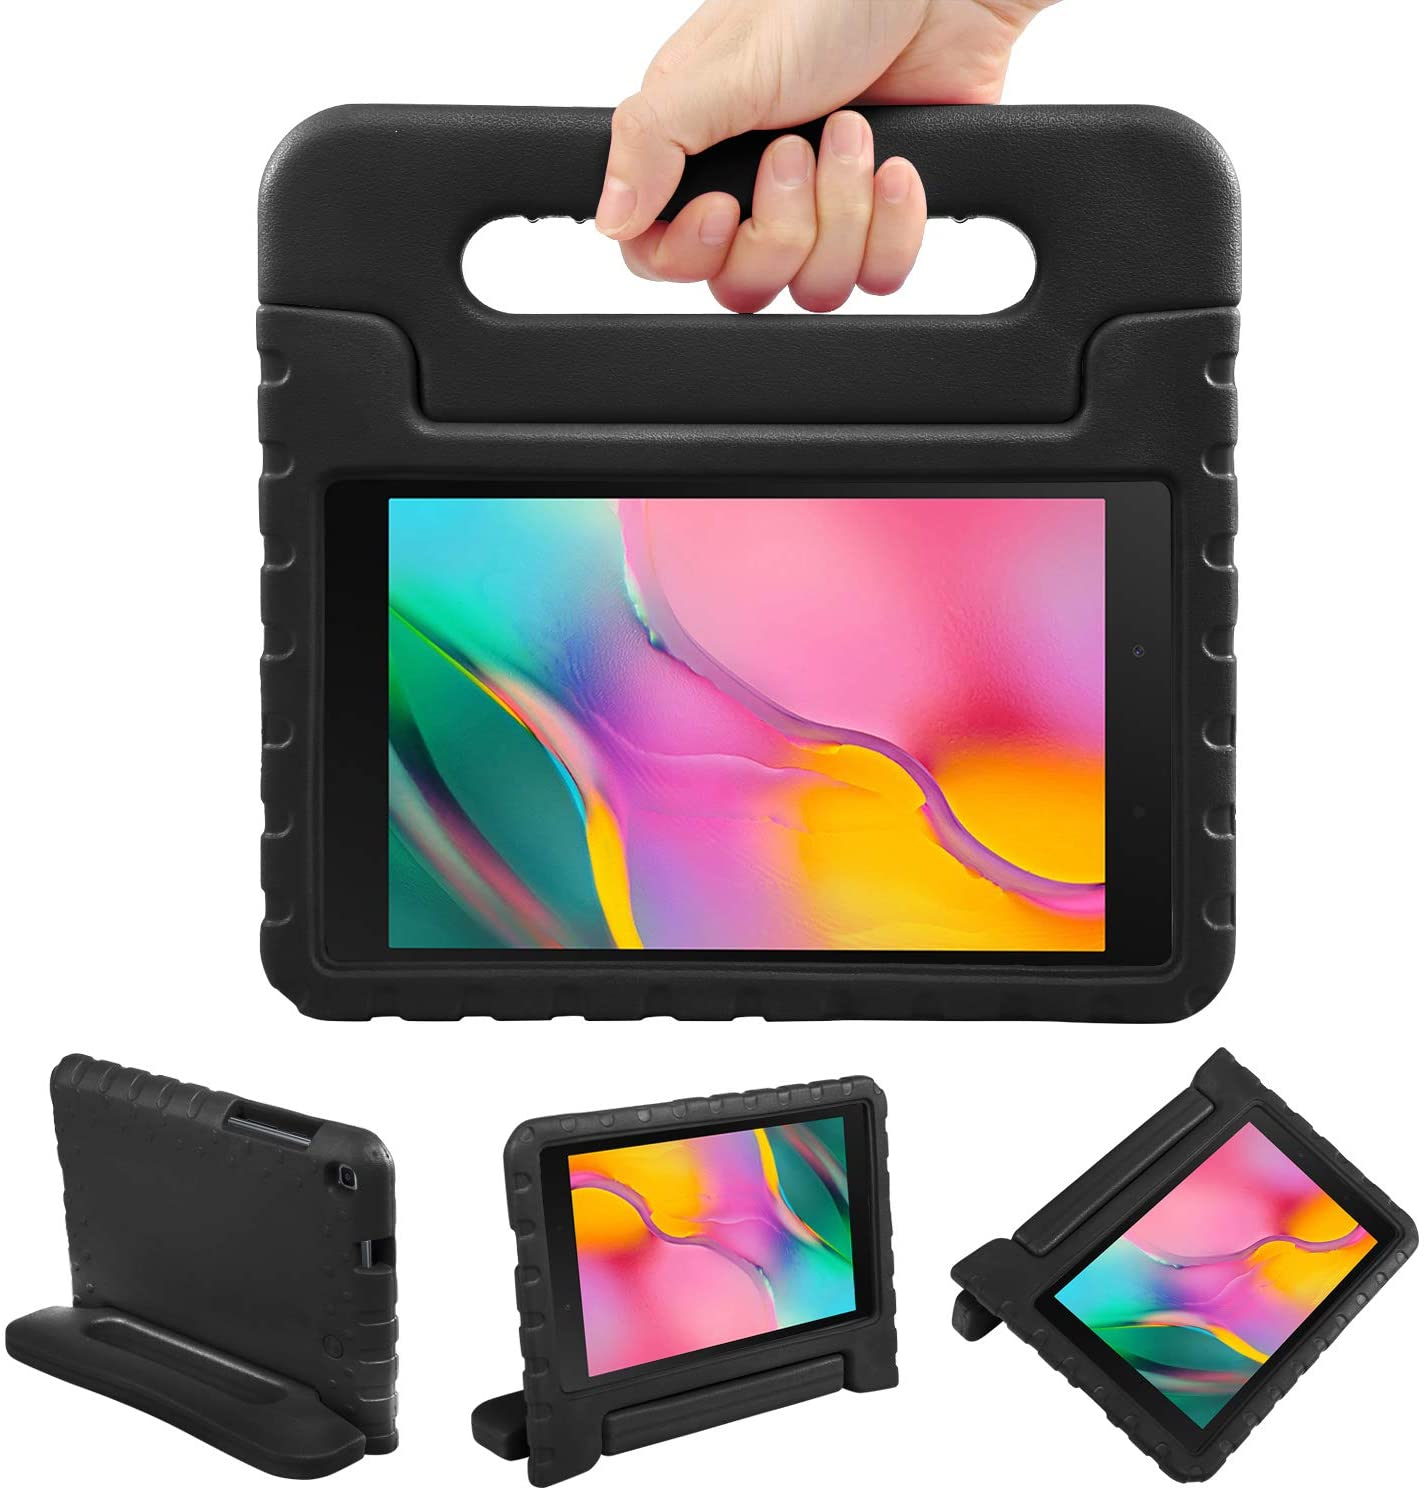 NEWSTYLE Kids Case for Samsung Galaxy Tab A 8.0 2019 SM-T290/T295, Shockproof Light Weight Protection Handle Stand Kids Case for Samsung Galaxy Tab A 8.0 Inch 2019 Tablet (Black)